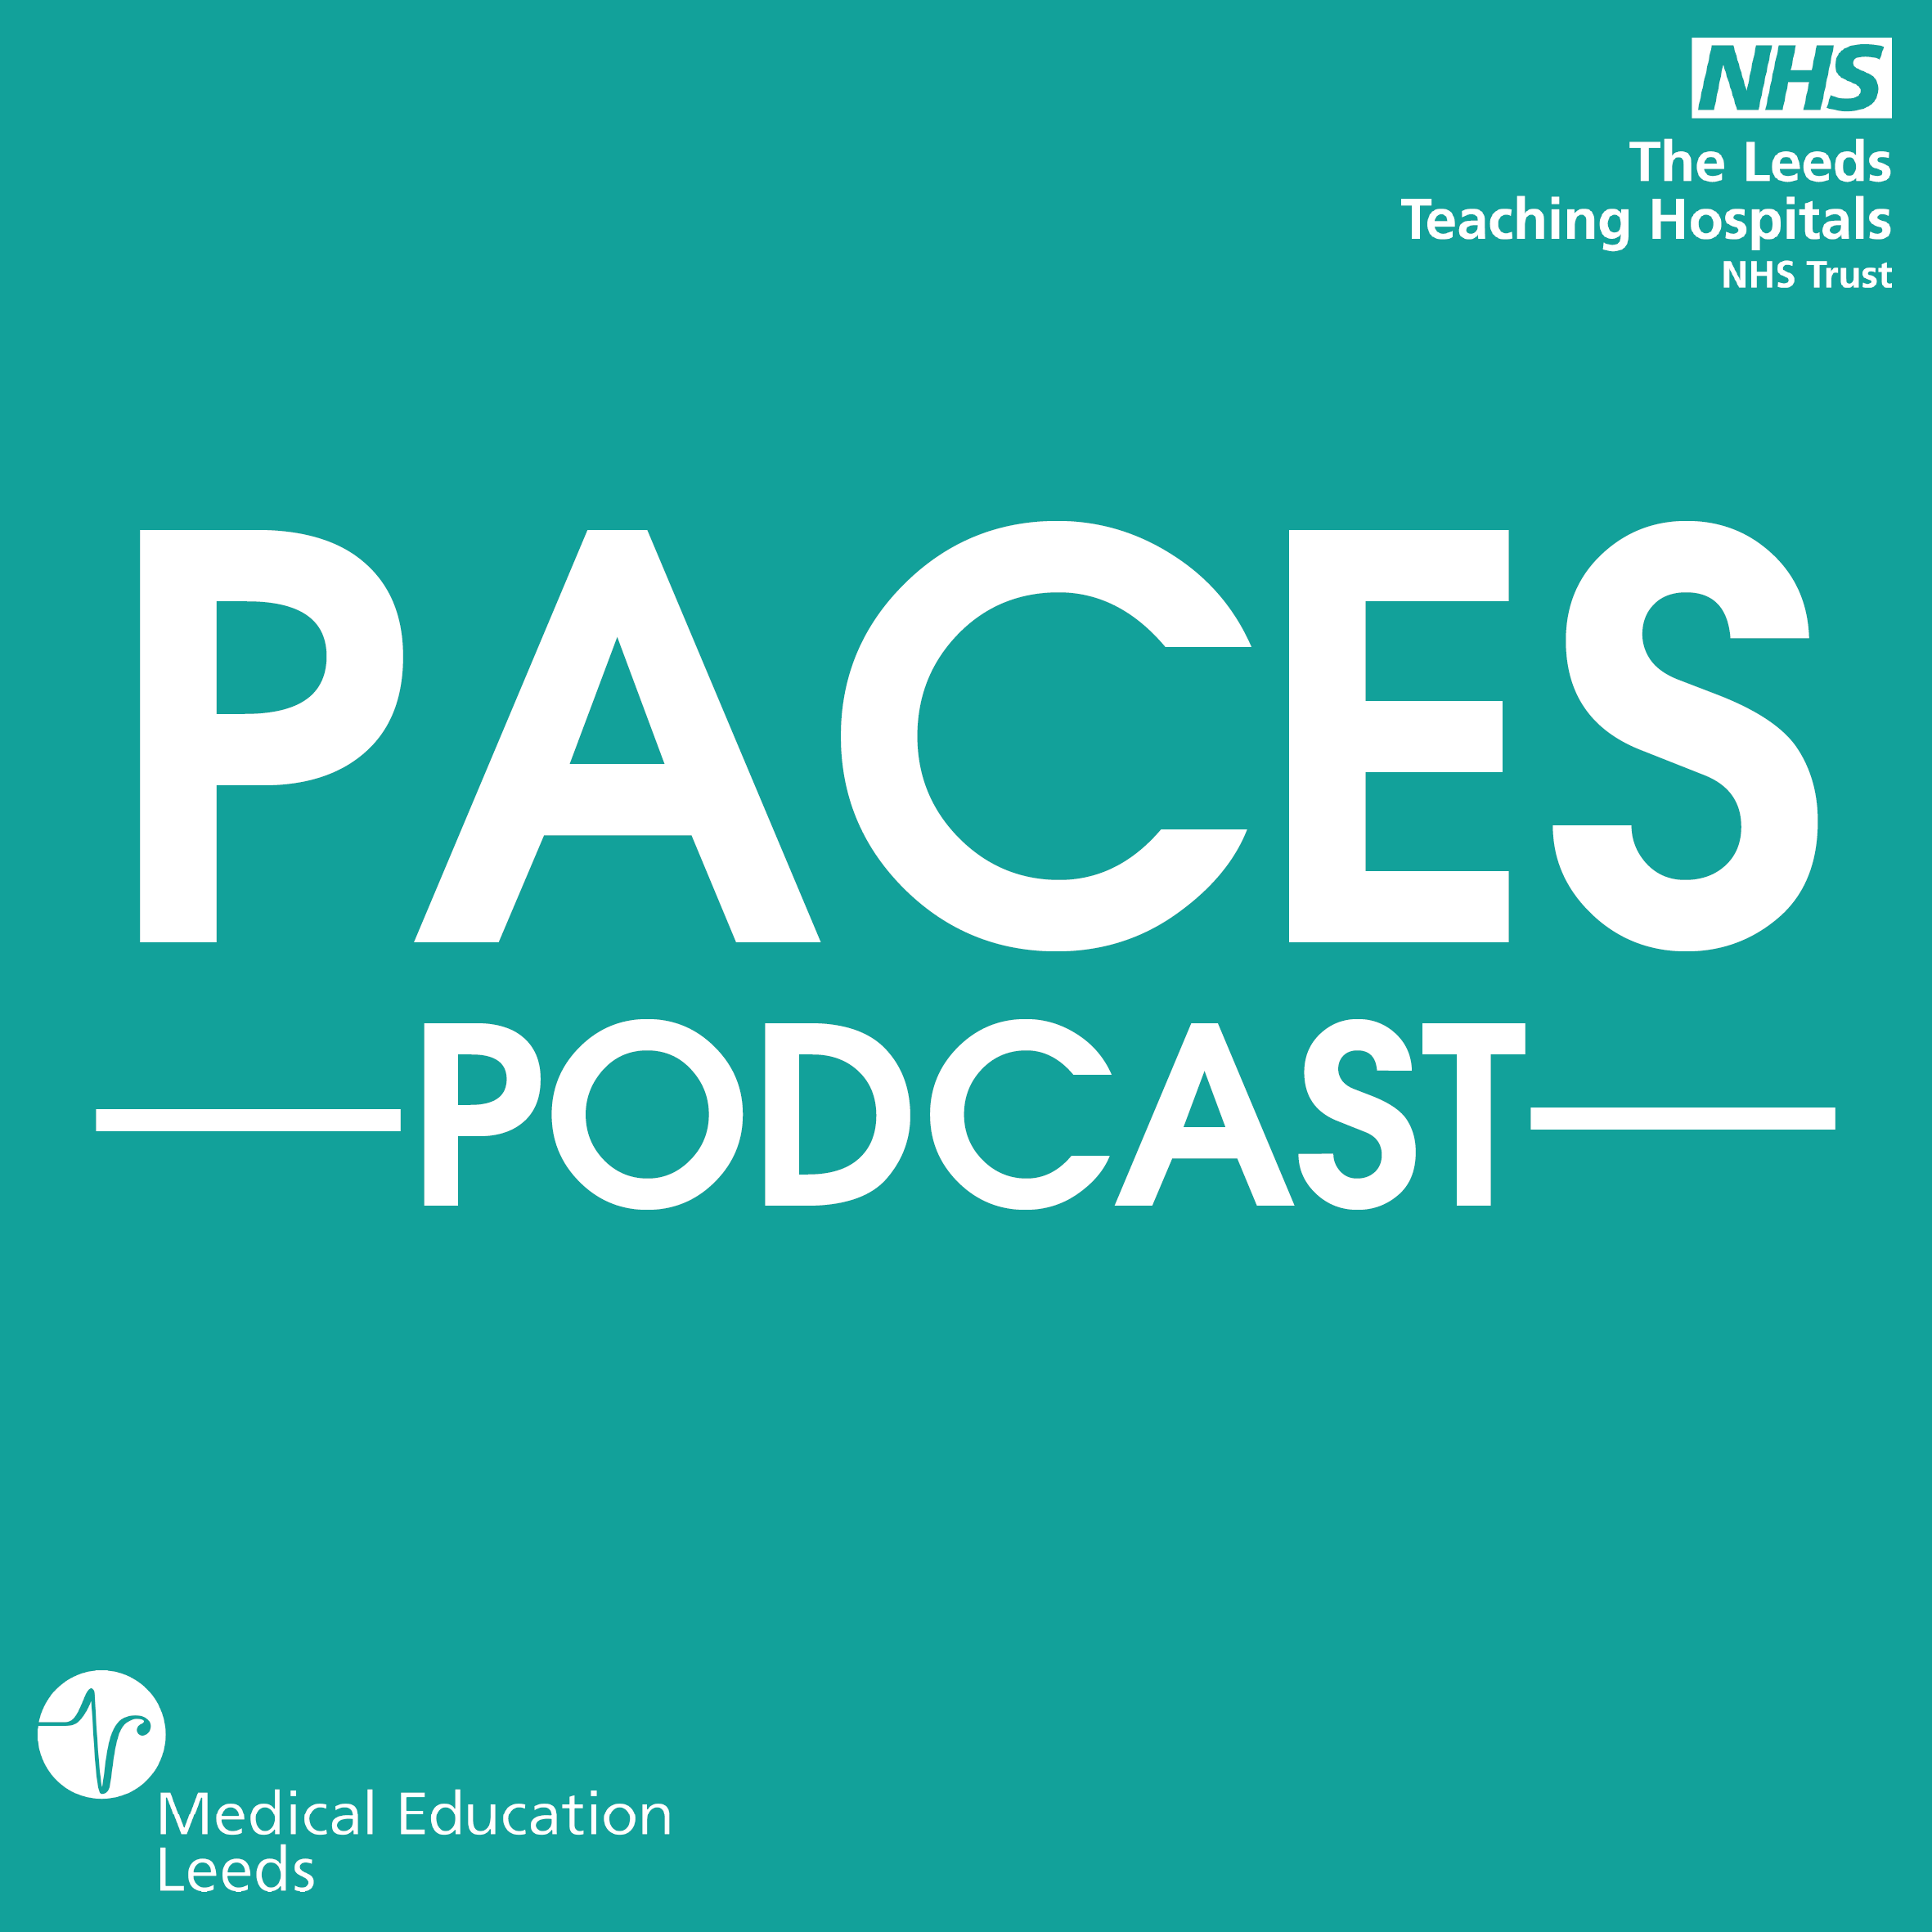 PACES Podcast Image